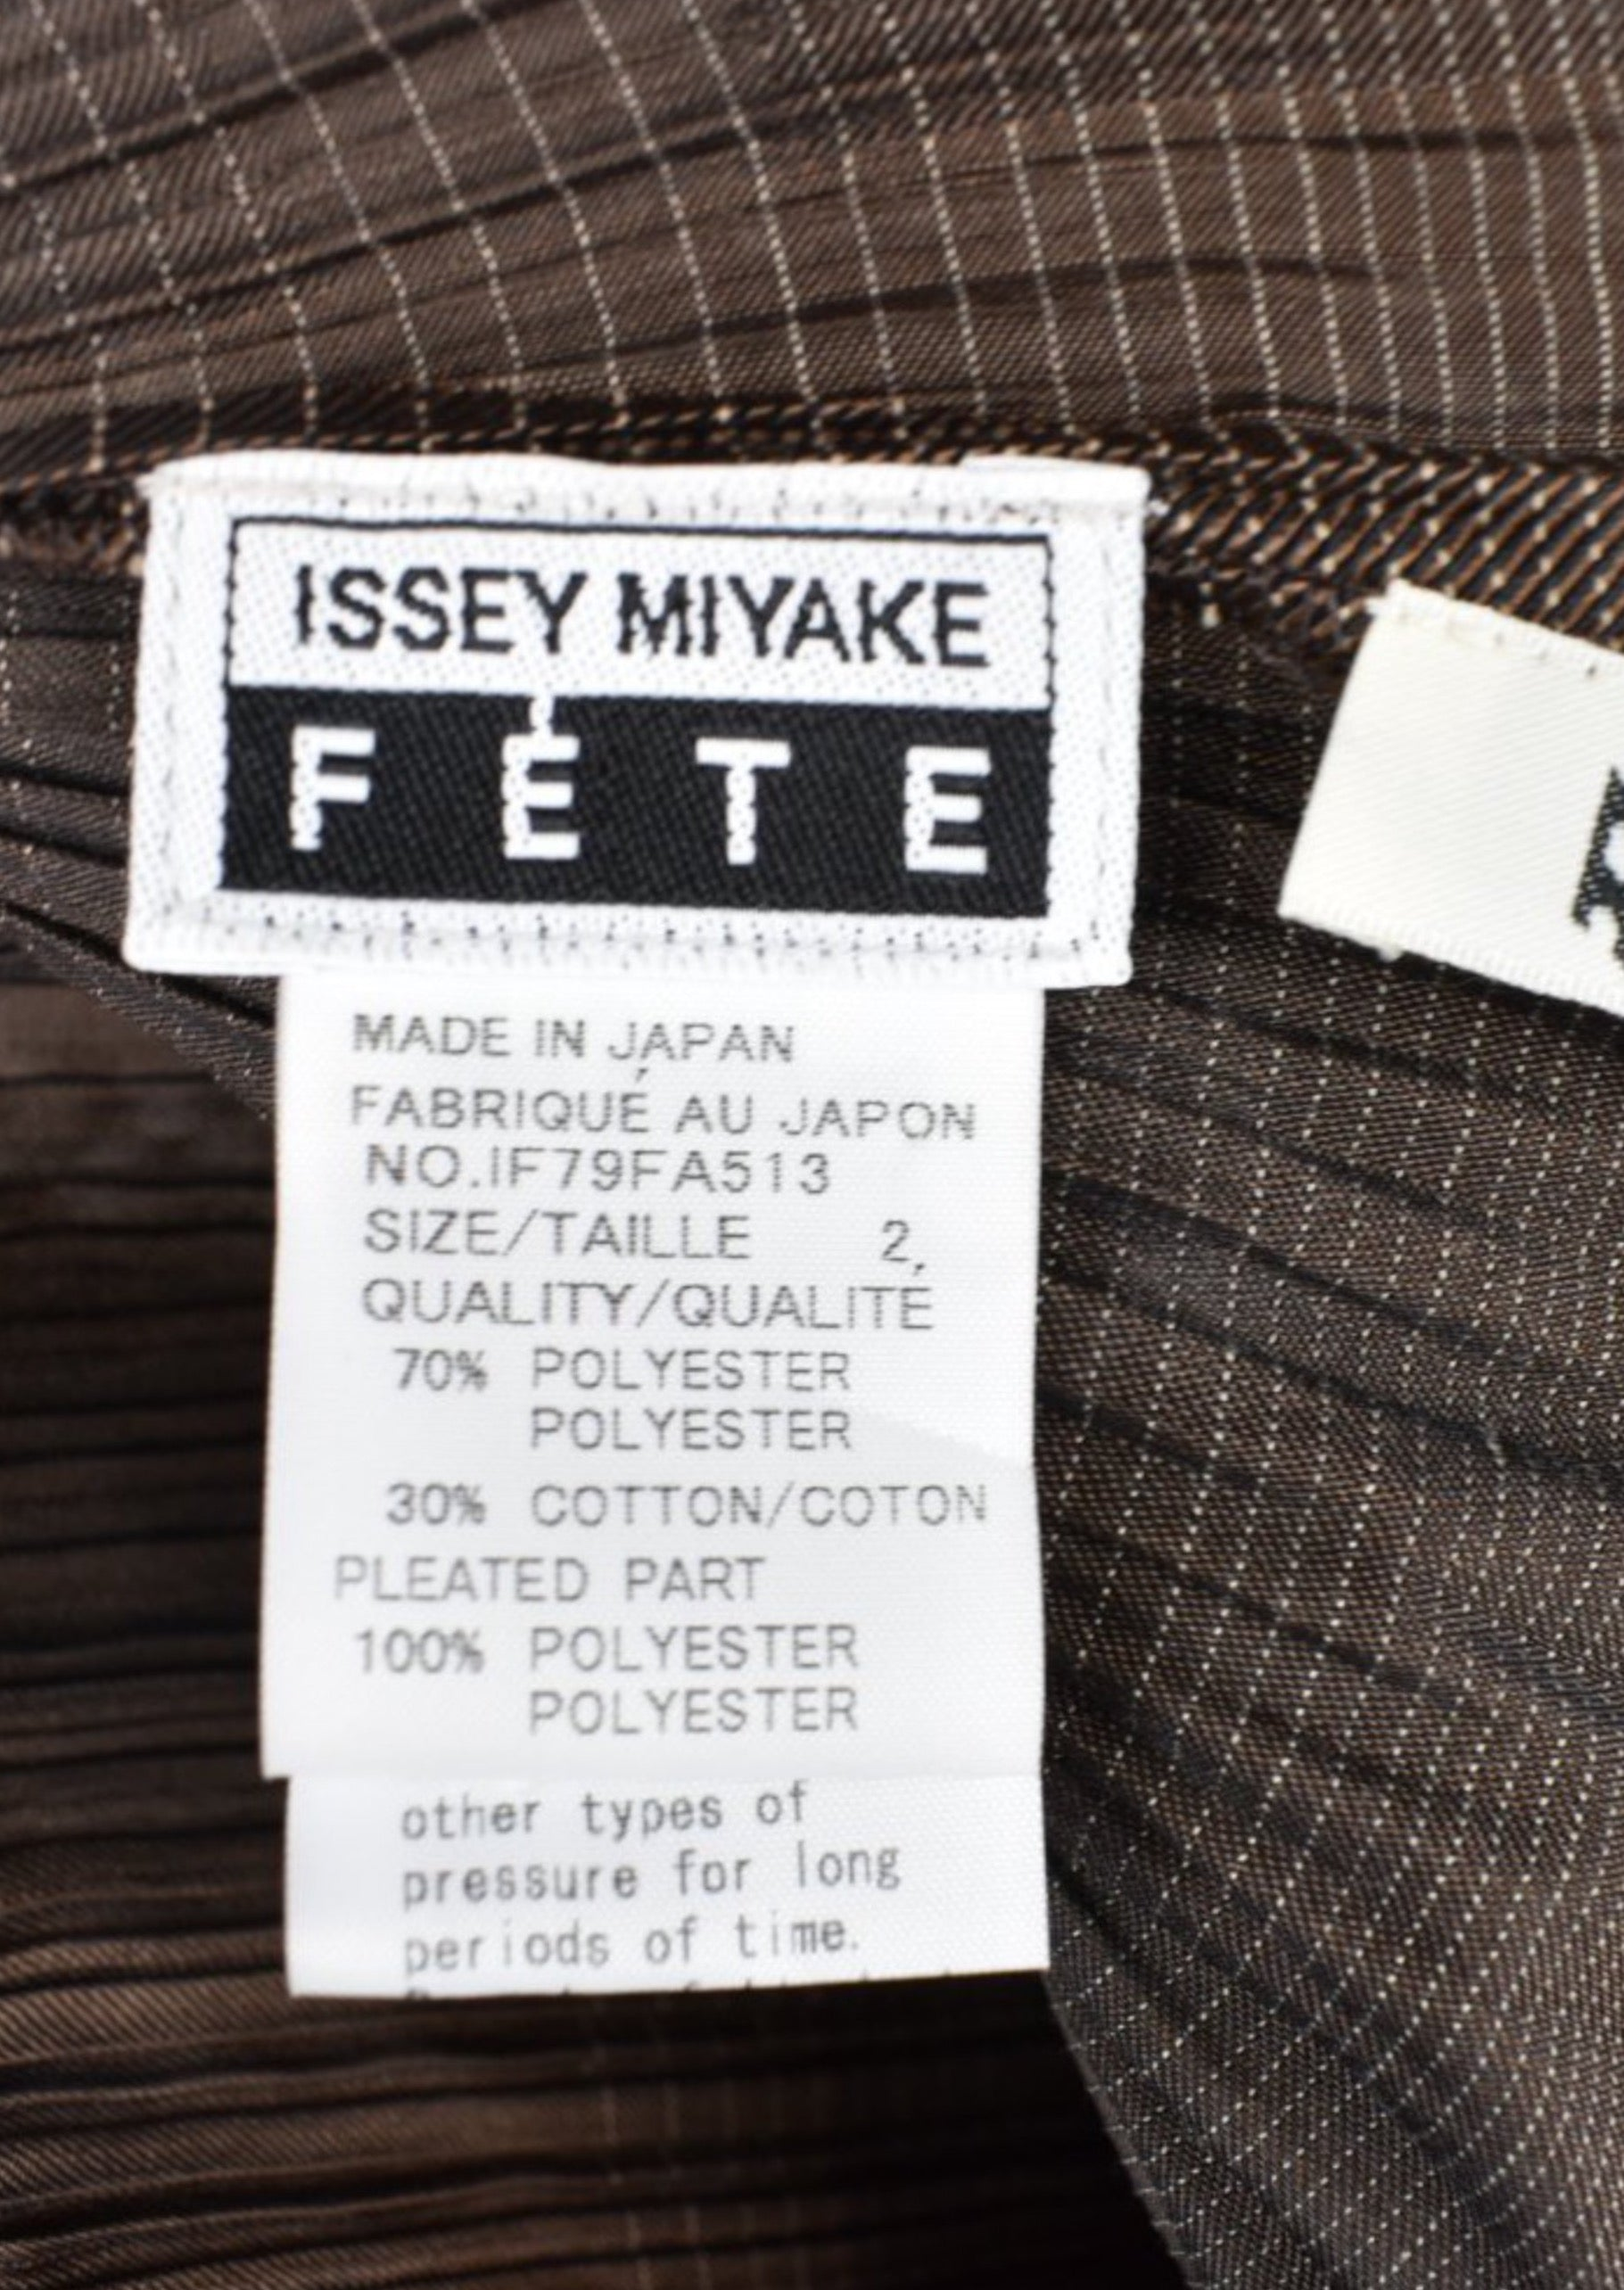 Pleated Izzy Miyake Dress, Made in Japan